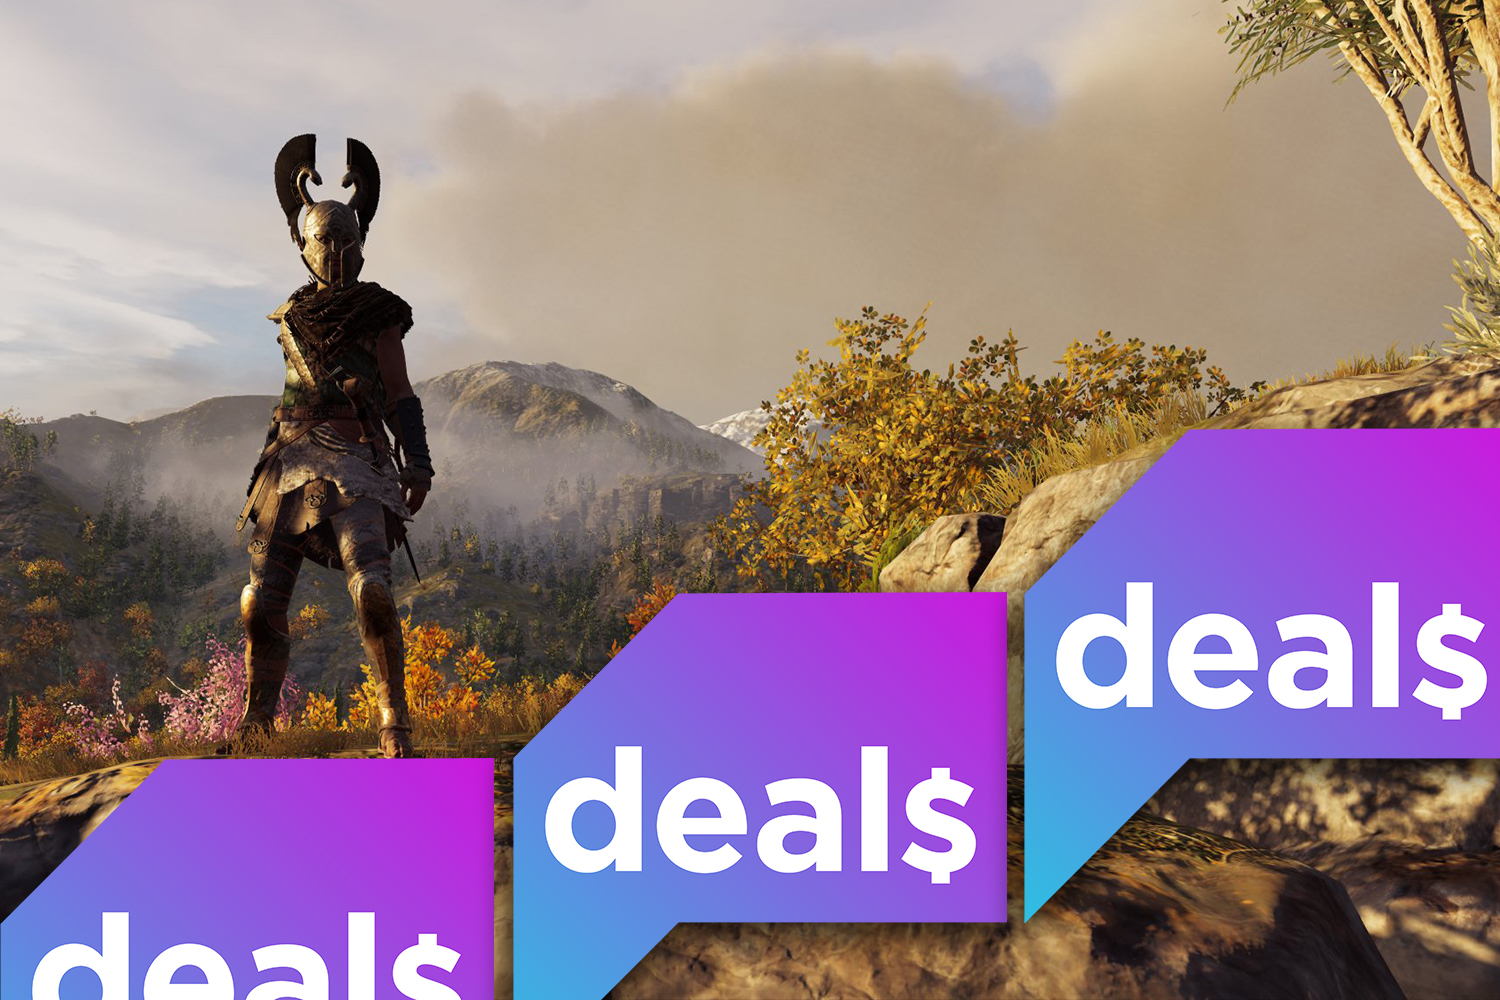 A PlayStation 4 Pro discount, Assassin's Creed Odyssey for $25, and more gaming deals